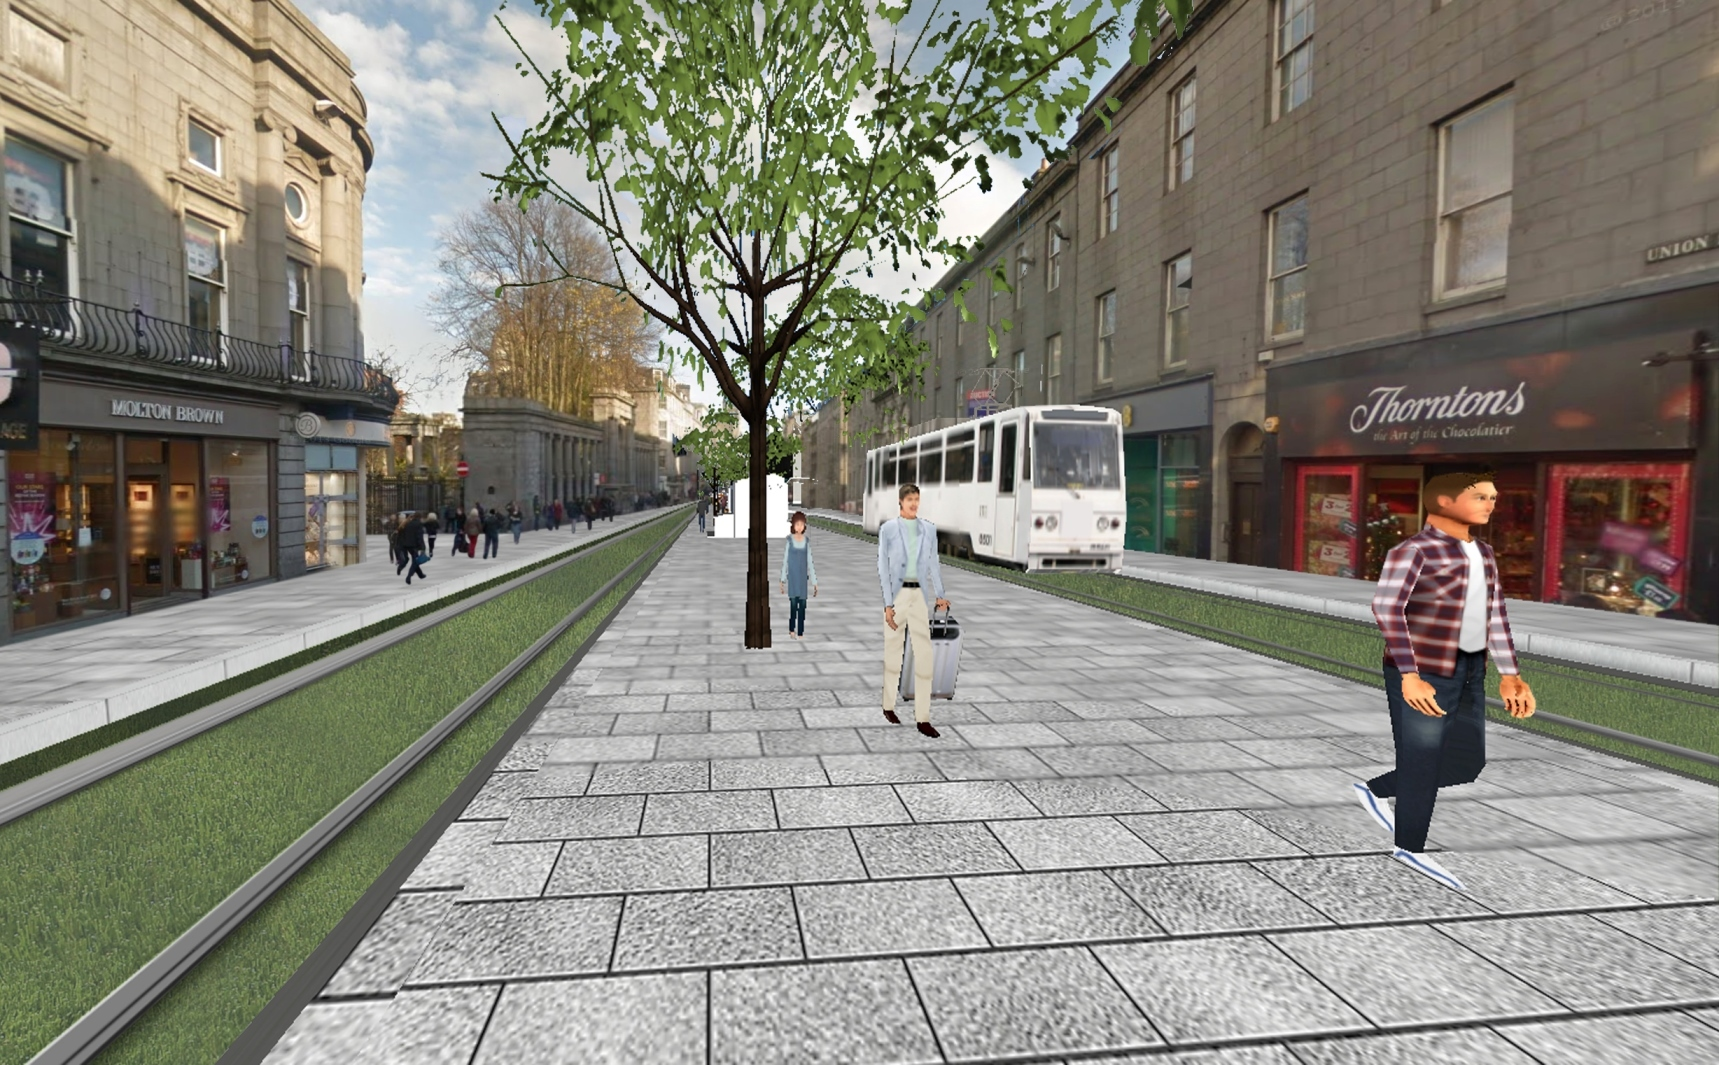 This image shows Dr Bennadji's vision for Union Street